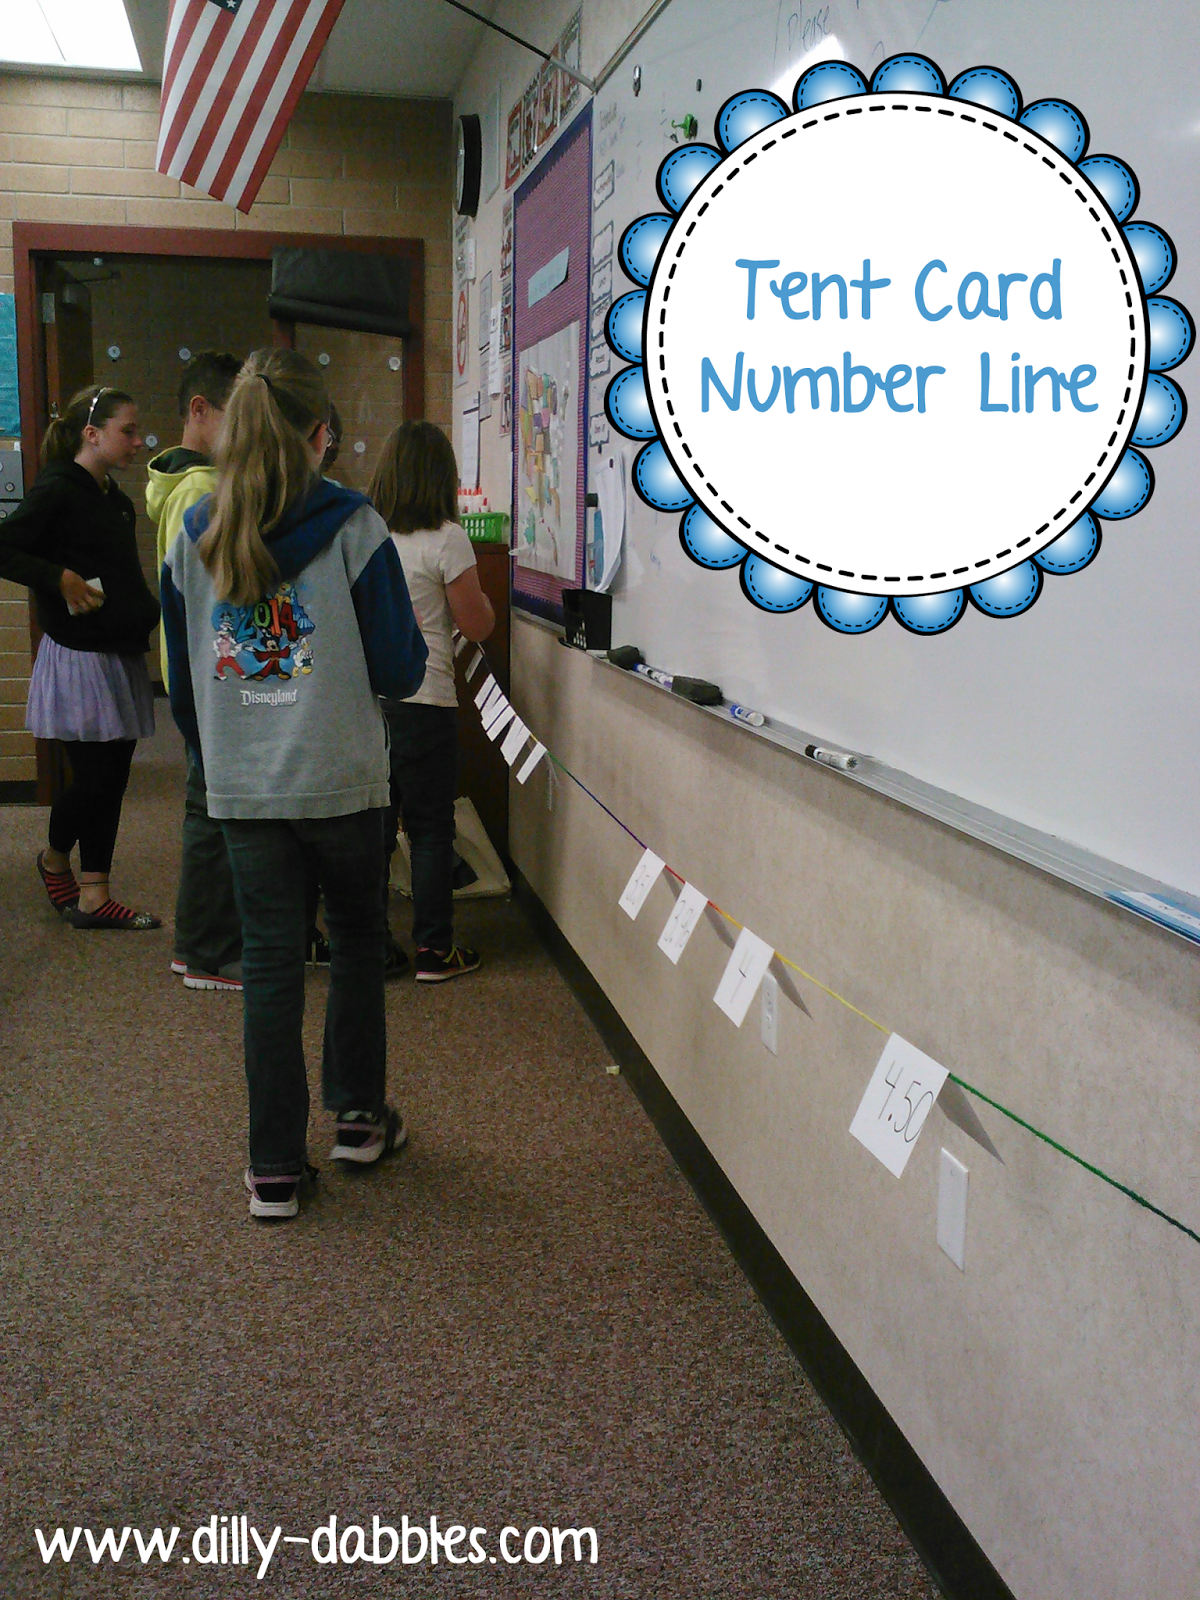 A Tent Card Number Line